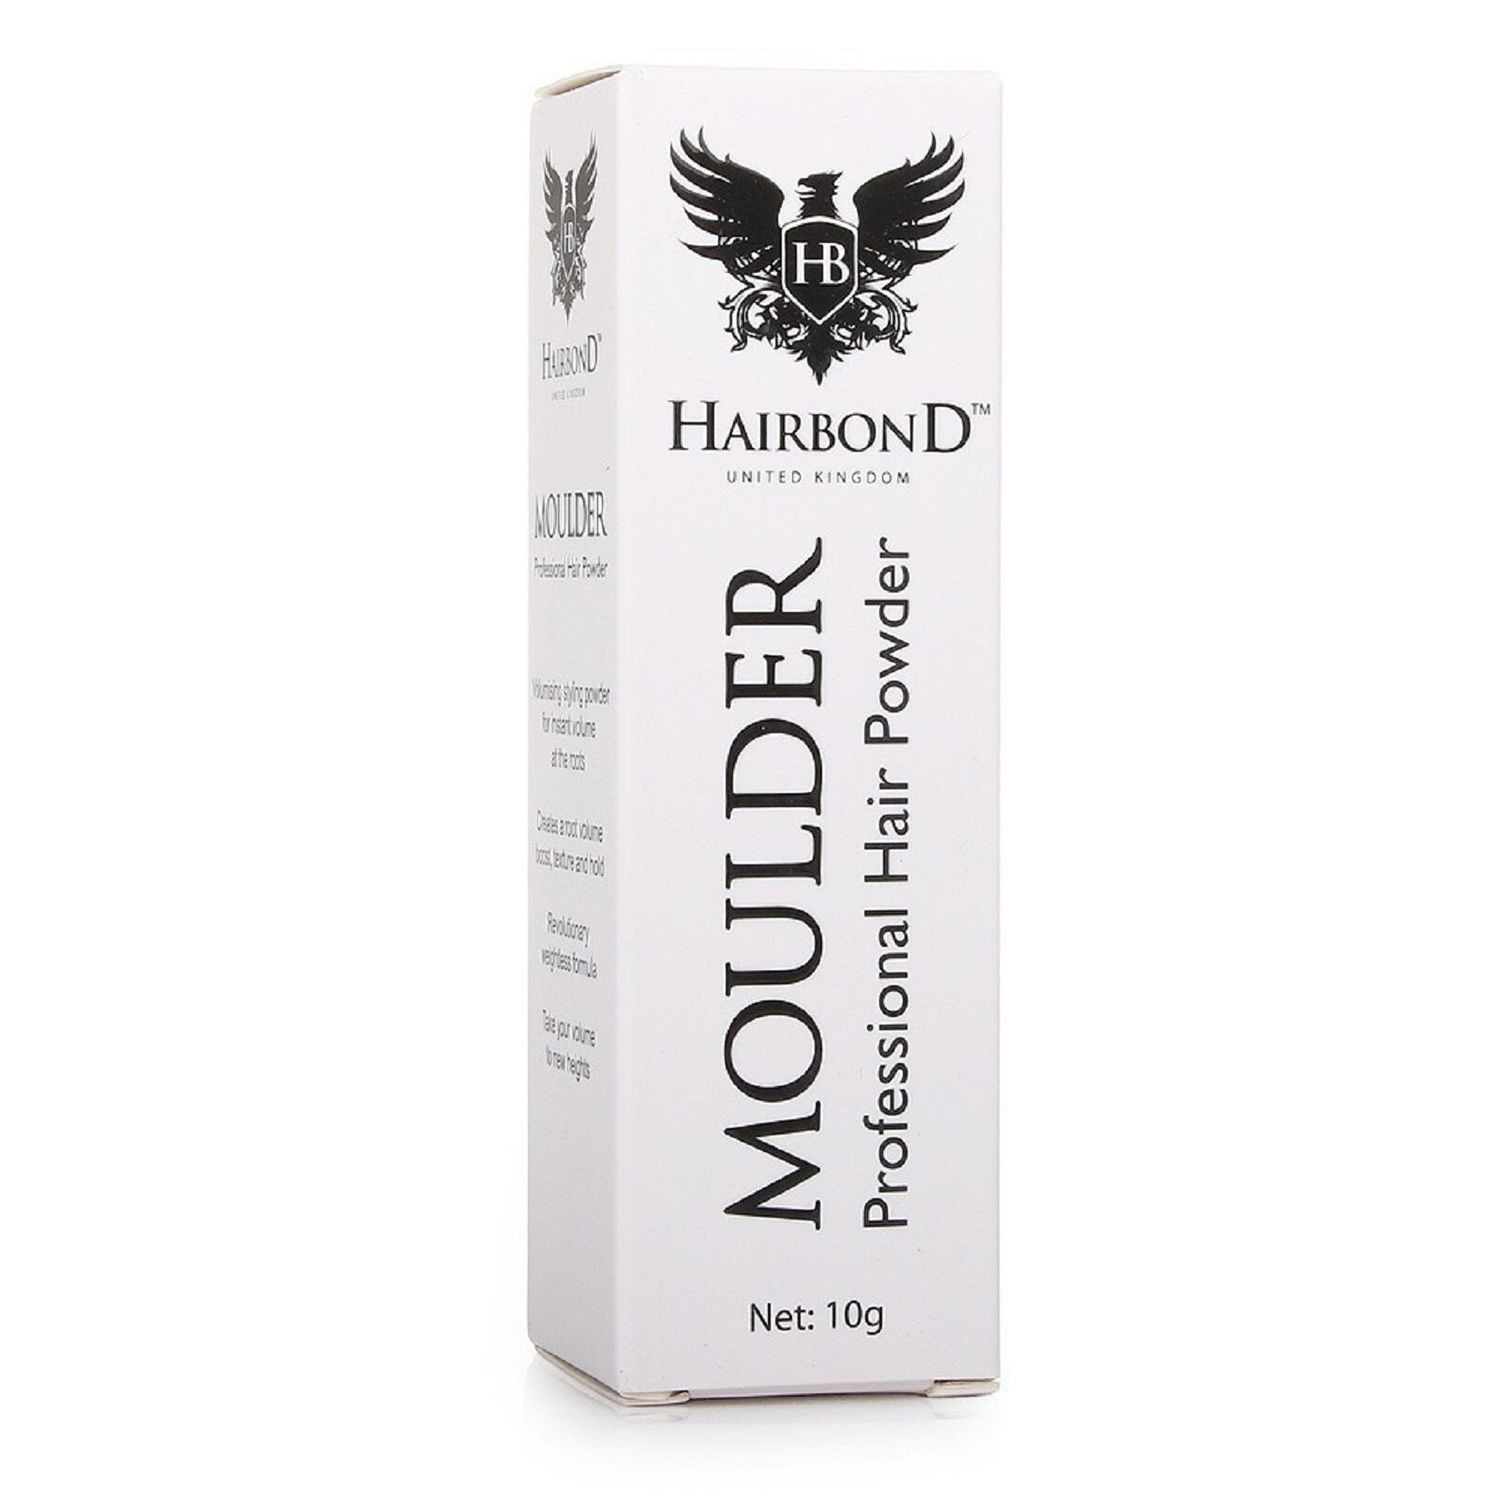 Hairbond Moulder Professional Hair Powder 10g